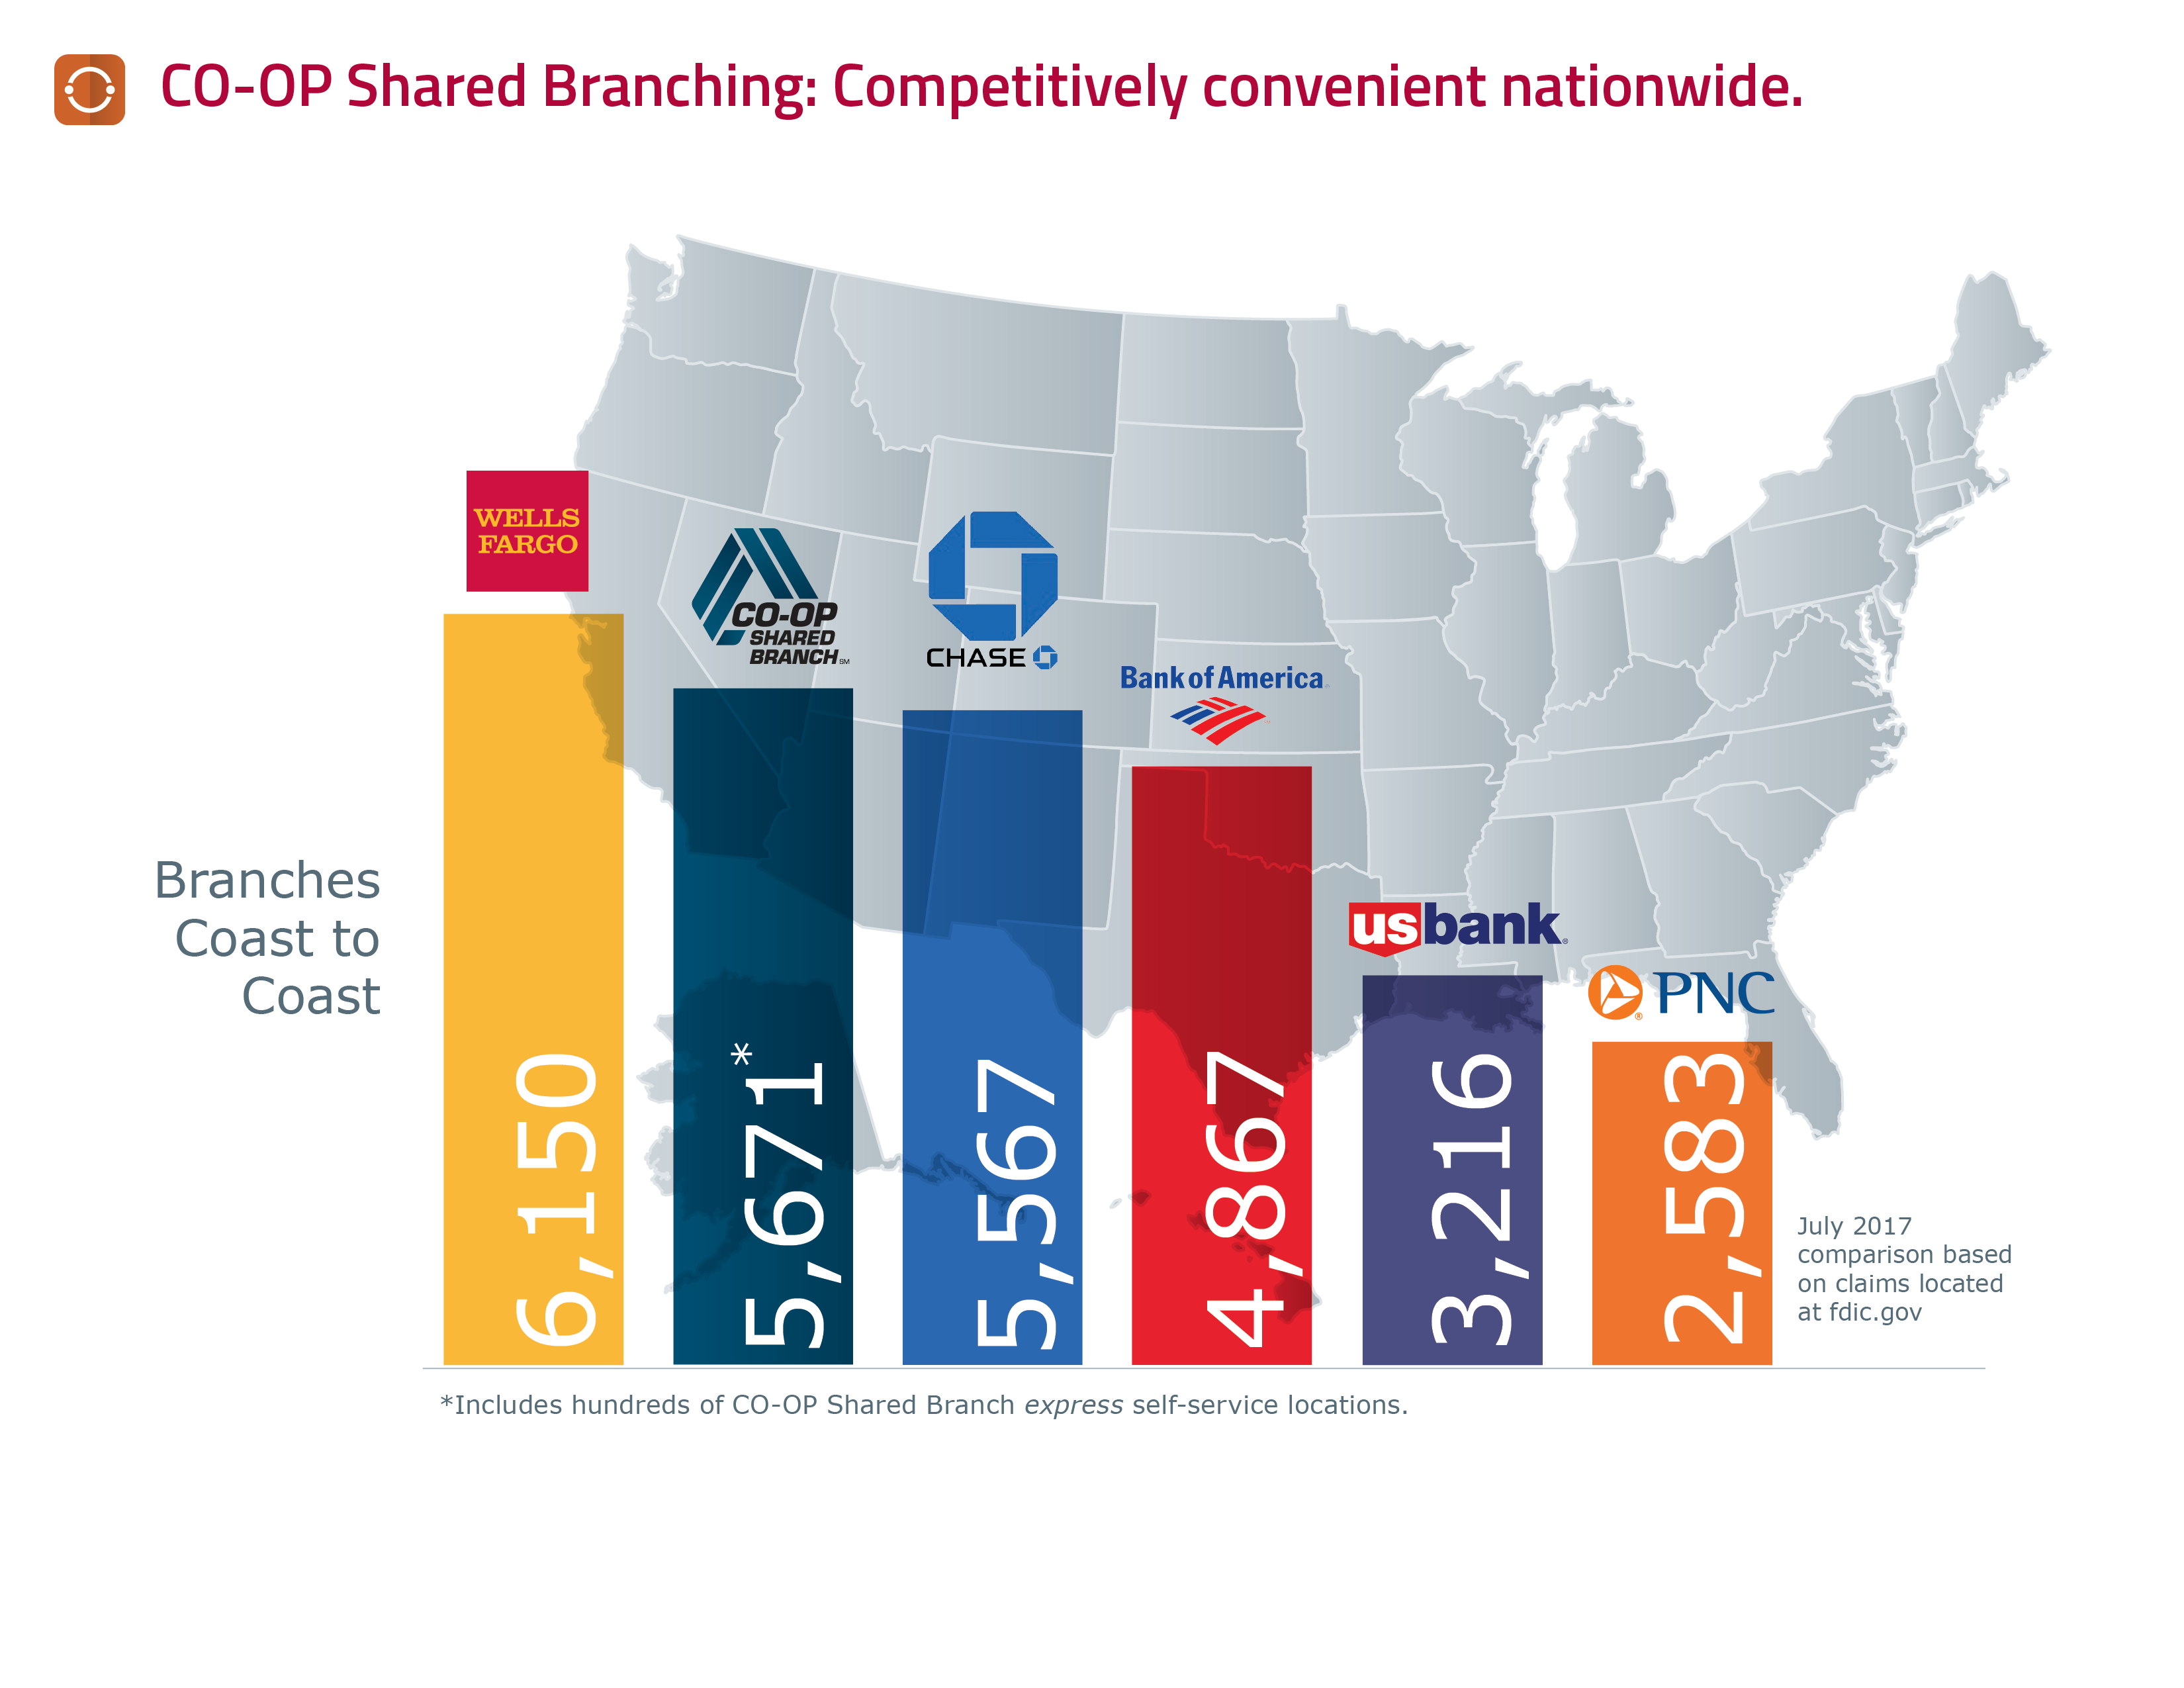 CO-OP Shared Branching: Competitively convenient nationwide. Branches Coast to Coast. Wells Fargo: 6,150. CO-OP Shared Branch: 5,671*. Chase: 5,567. Bank of America: 4,867. US Bank: 3,216. PNC: 2,583. *Includes hundres of CO-OP Shared Branch express self-service locations. July 2017 comparison based on claims located at fdic.gov